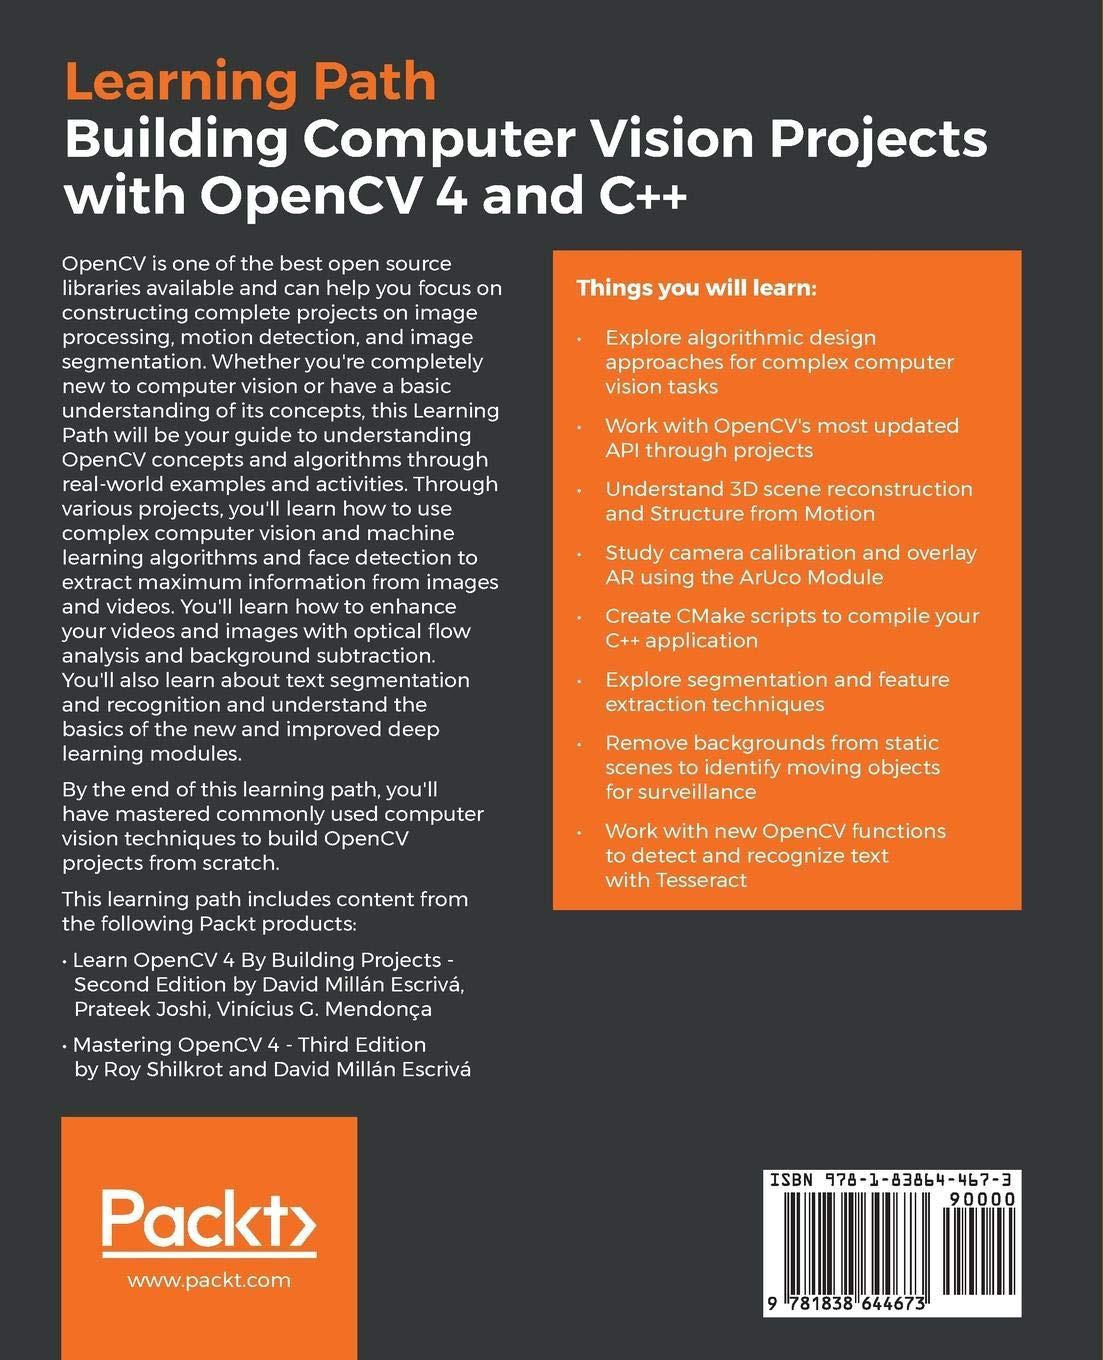 Building Computer Vision Projects with OpenCV 4 and C++